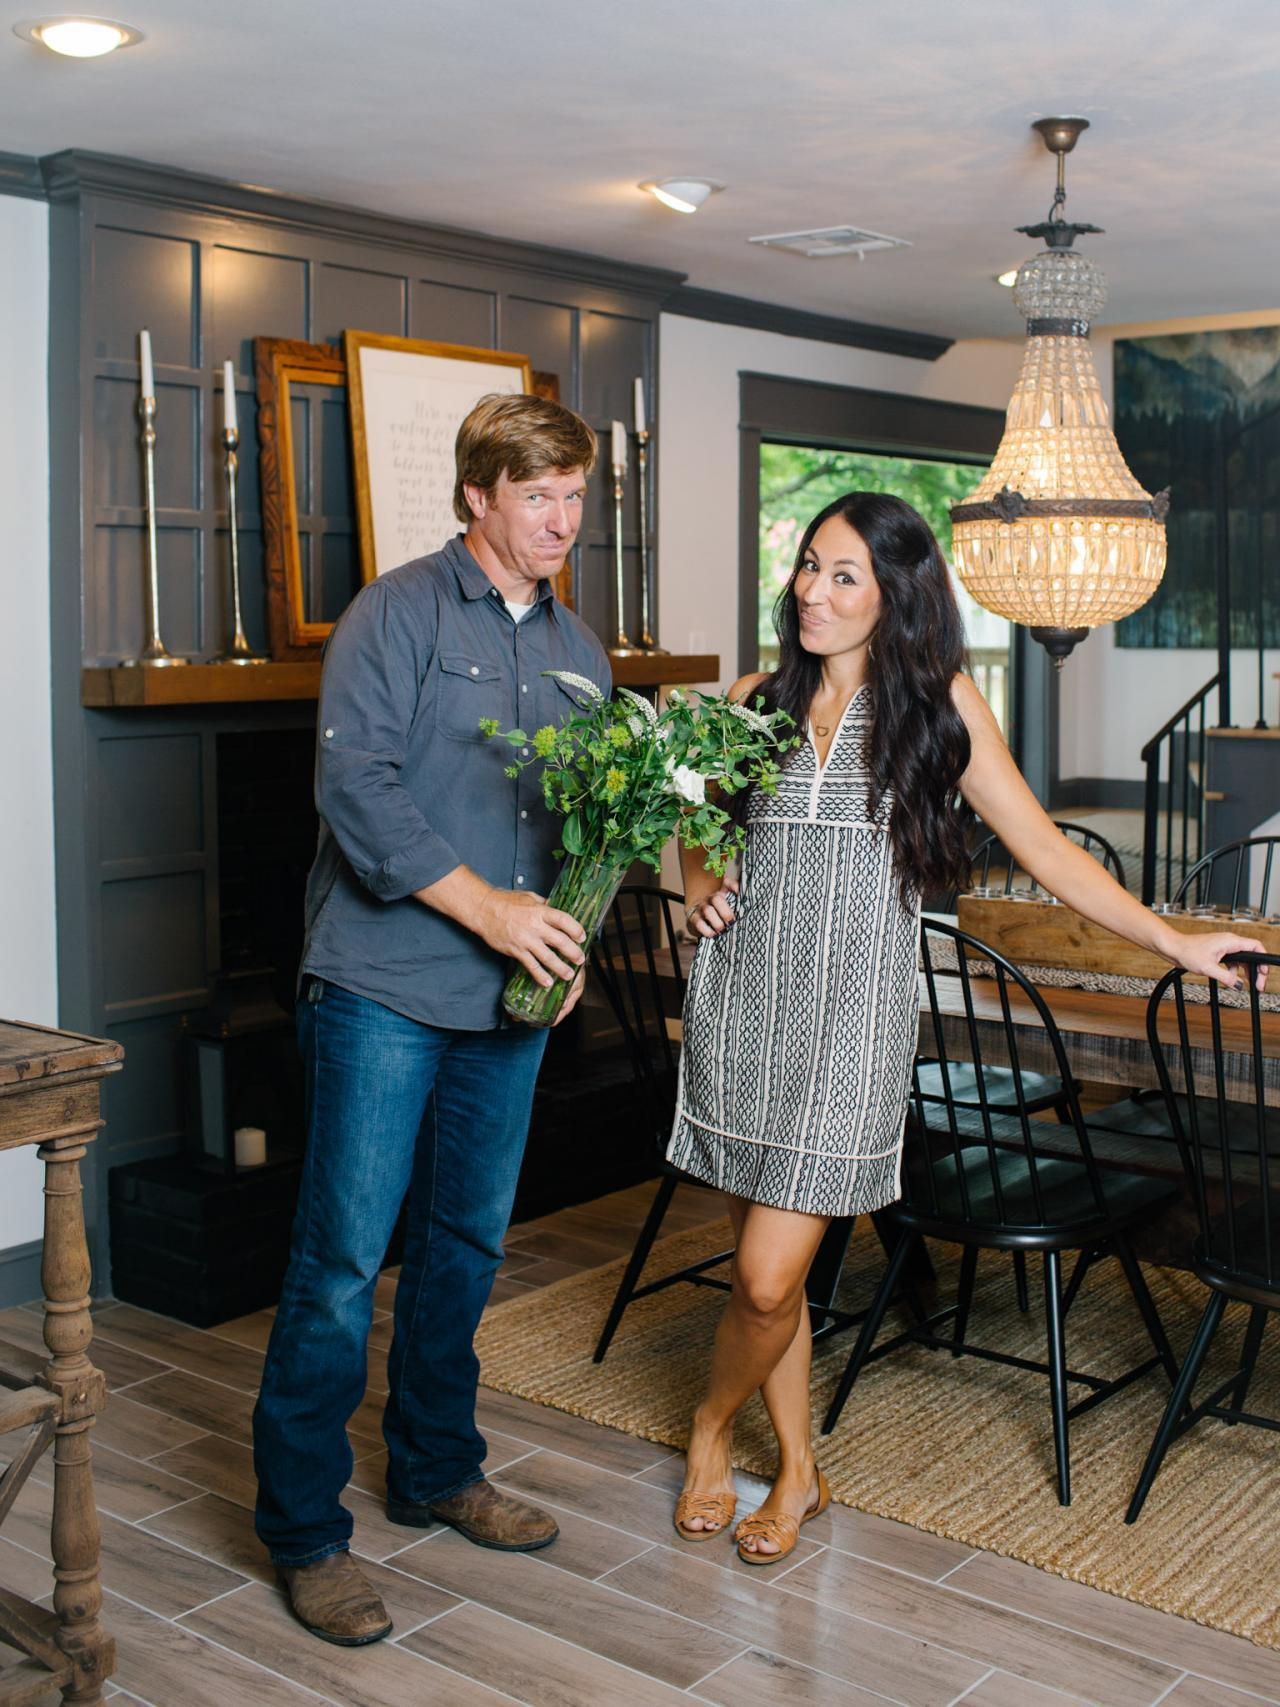 Joanna gaines 39 s feet for Where is joanna gaines originally from